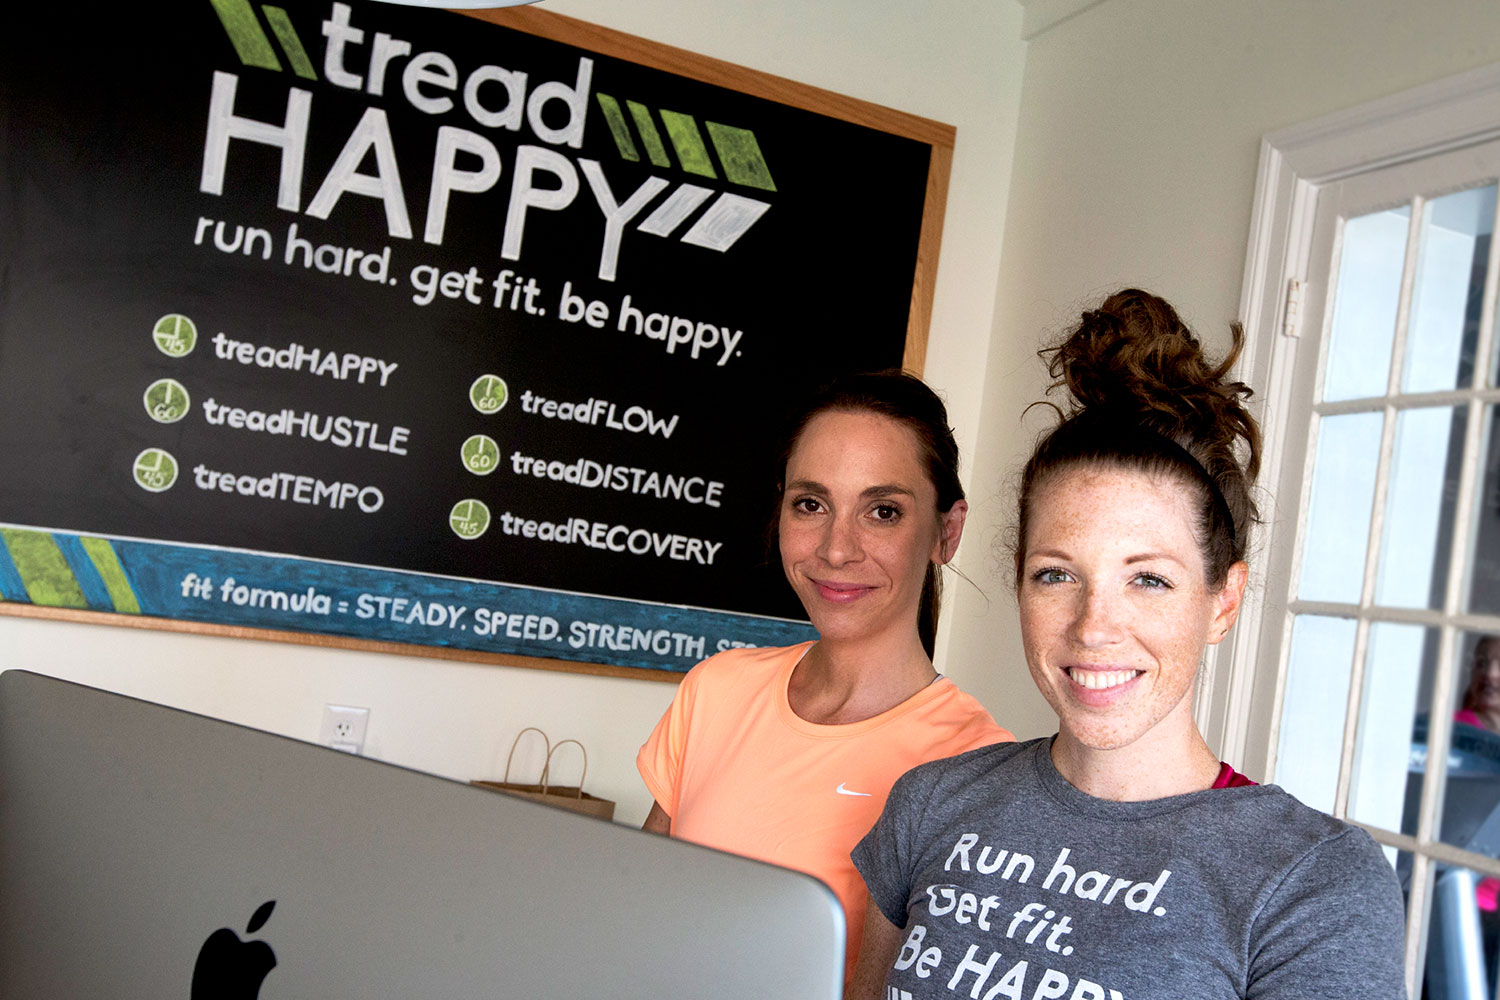 Claire Mitchell and Sara Yeatman Currier, both UVA Curry School of Education alumnae, opened their treadmill-based fitness studio, tread HAPPY, in February.